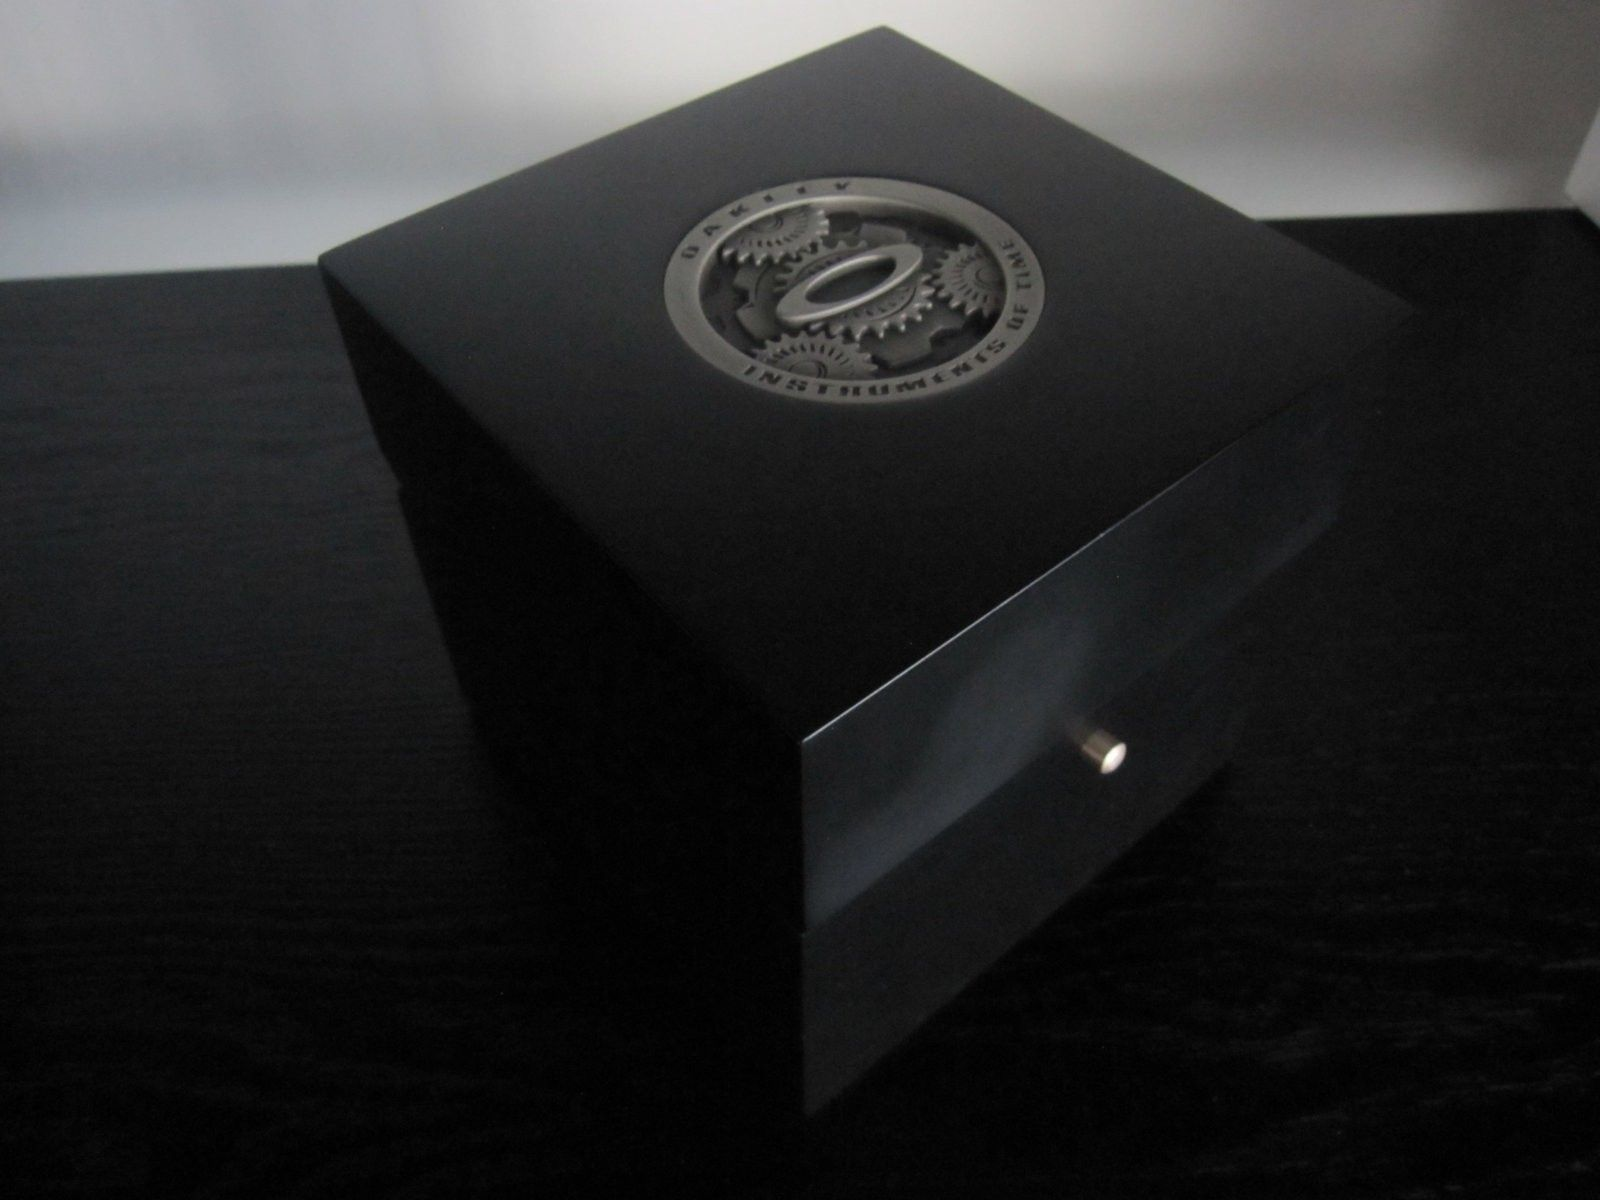 MM deluxe wooden box (with the watch instruments coin on top) - IMG_5476.JPG